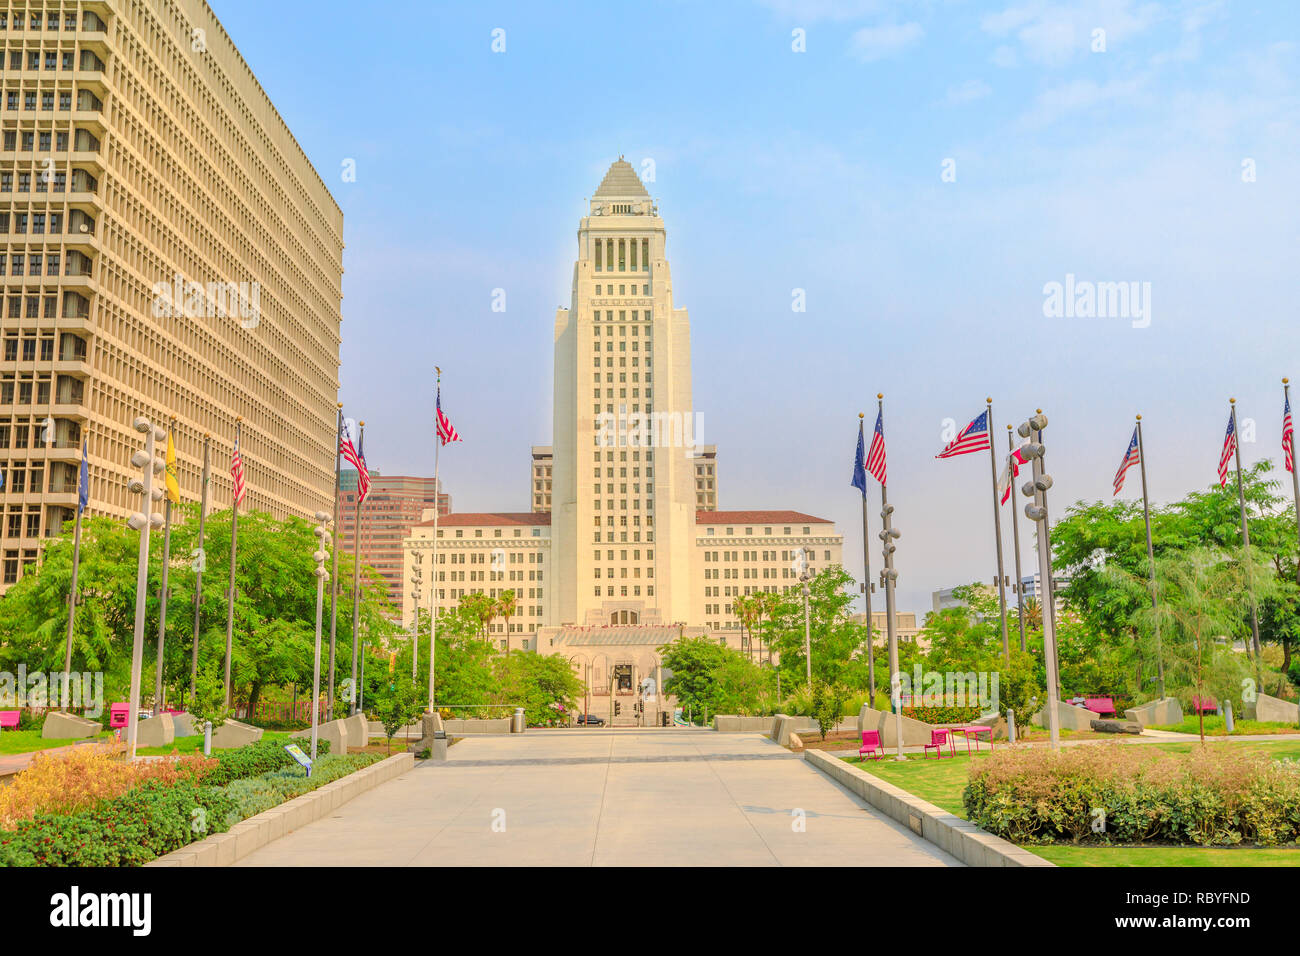 Front view of Los Angeles City Hall and Civic Center buildings in Downtown of LA. The building is home to the government and mayor of city of Los Angeles, California, United States. Urban cityscape. - Stock Image